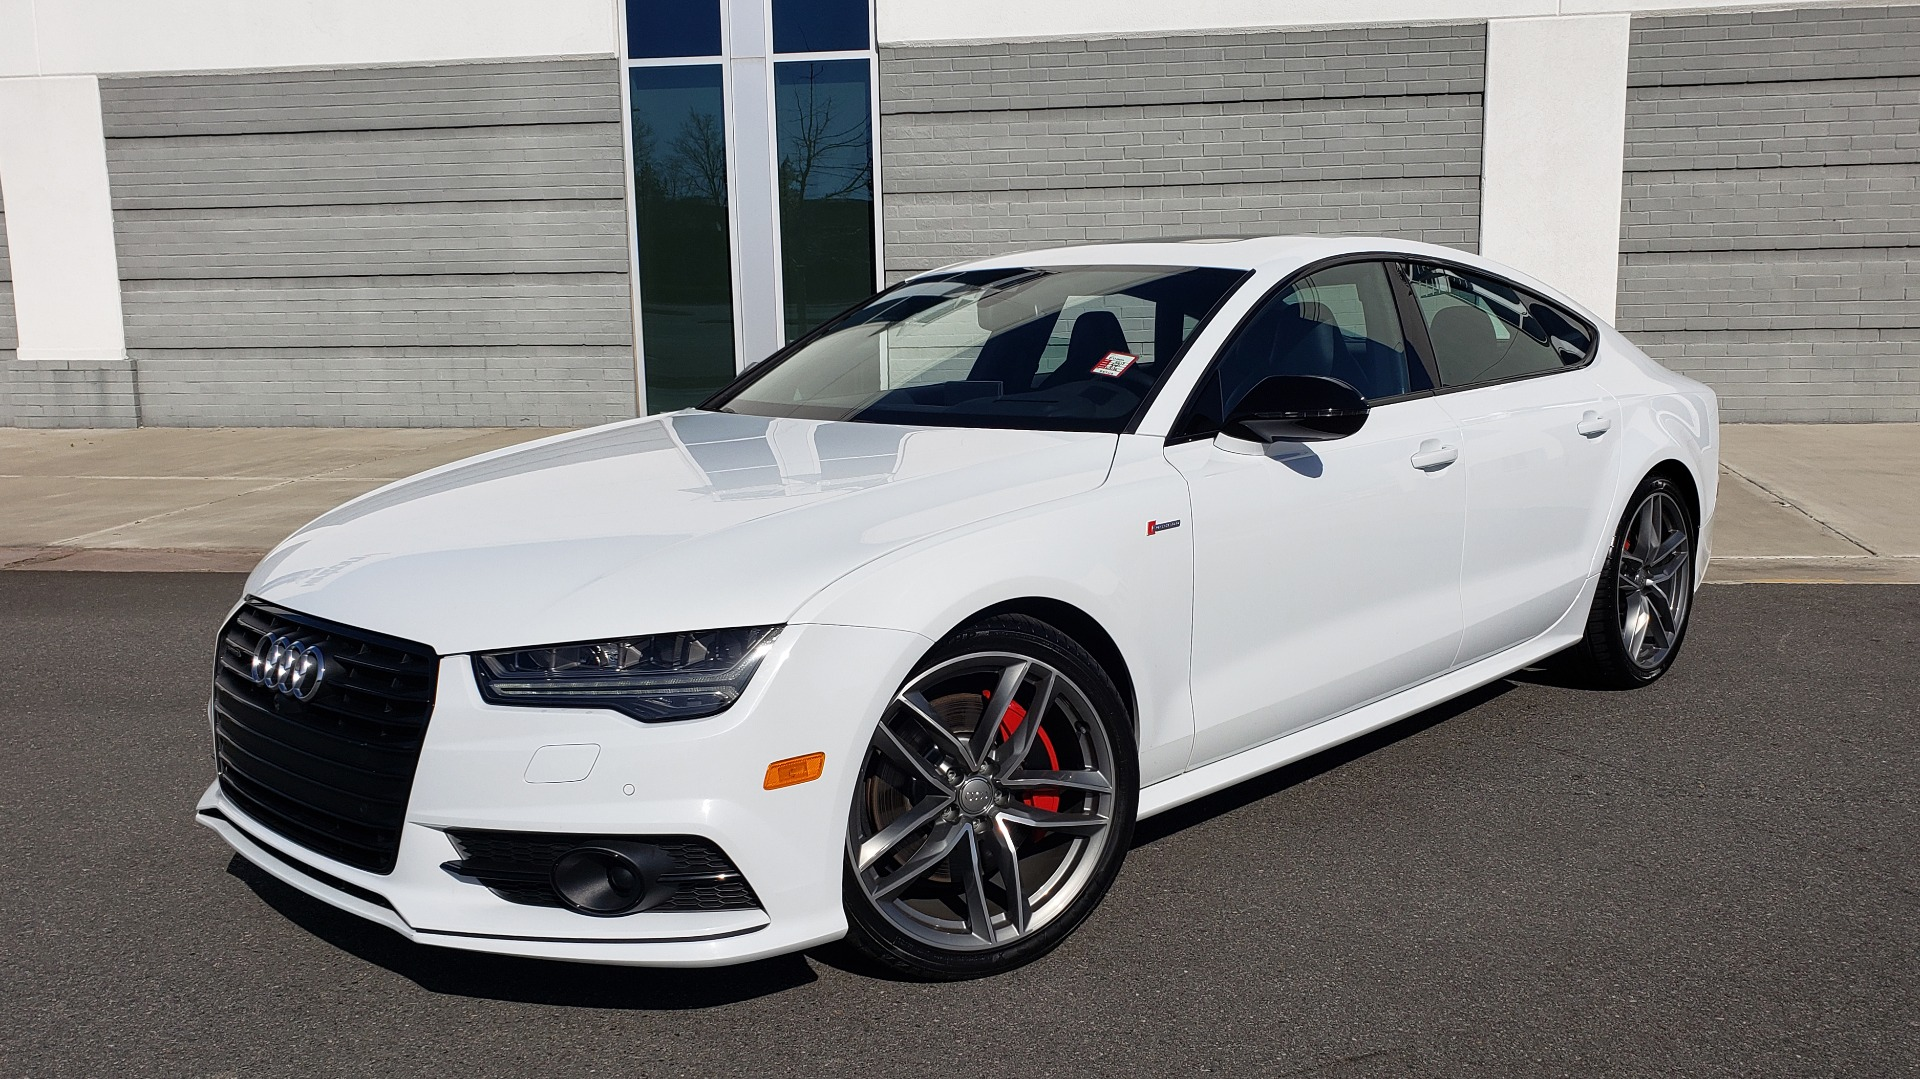 Used 2017 Audi A7 COMPETITION PRESTIGE 3.0T / NAV / DRVR ASST / ADAPT CRUISE for sale $41,995 at Formula Imports in Charlotte NC 28227 1